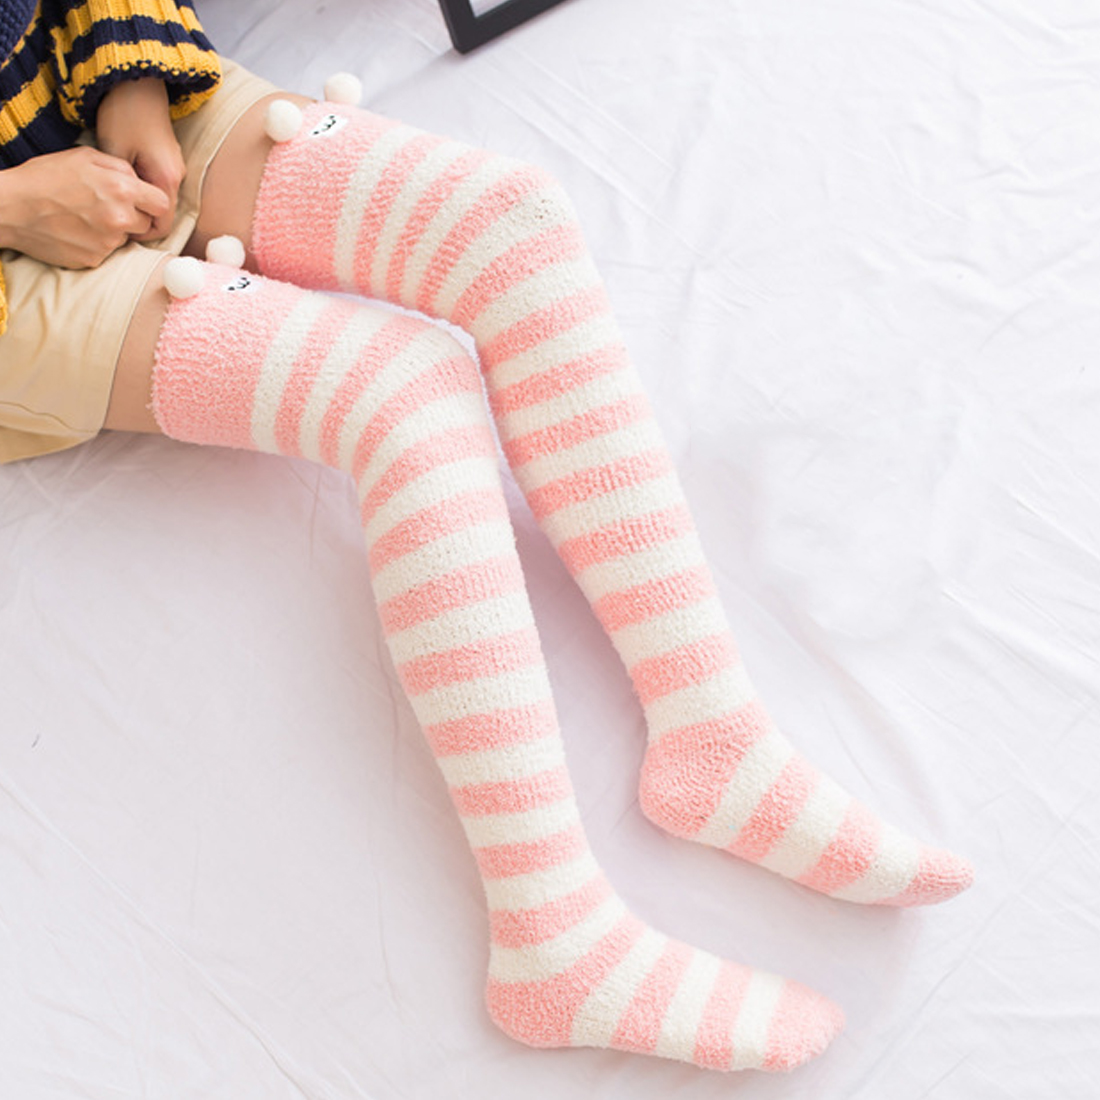 New Japanese Girl Animal Modeling <font><b>Knee</b></font> <font><b>Socks</b></font> Striped Cute Lovely <font><b>Kawaii</b></font> Cozy Long Thigh High <font><b>Socks</b></font> Winter Warm <font><b>Sock</b></font> image